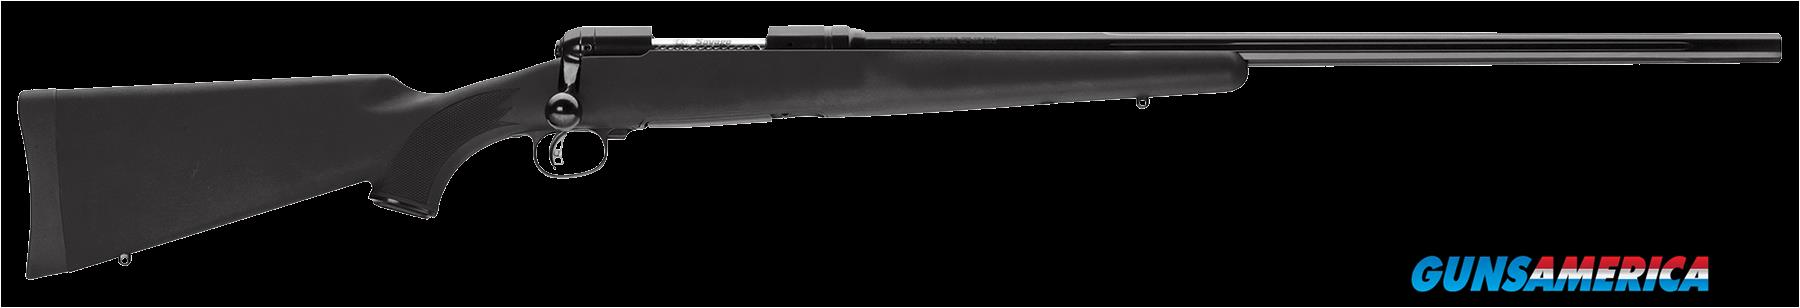 "Savage 22446 12 FCV Bolt 204 Ruger 26"" 4+1 Synthetic Black Stk Black  Guns > Rifles > Savage Rifles"